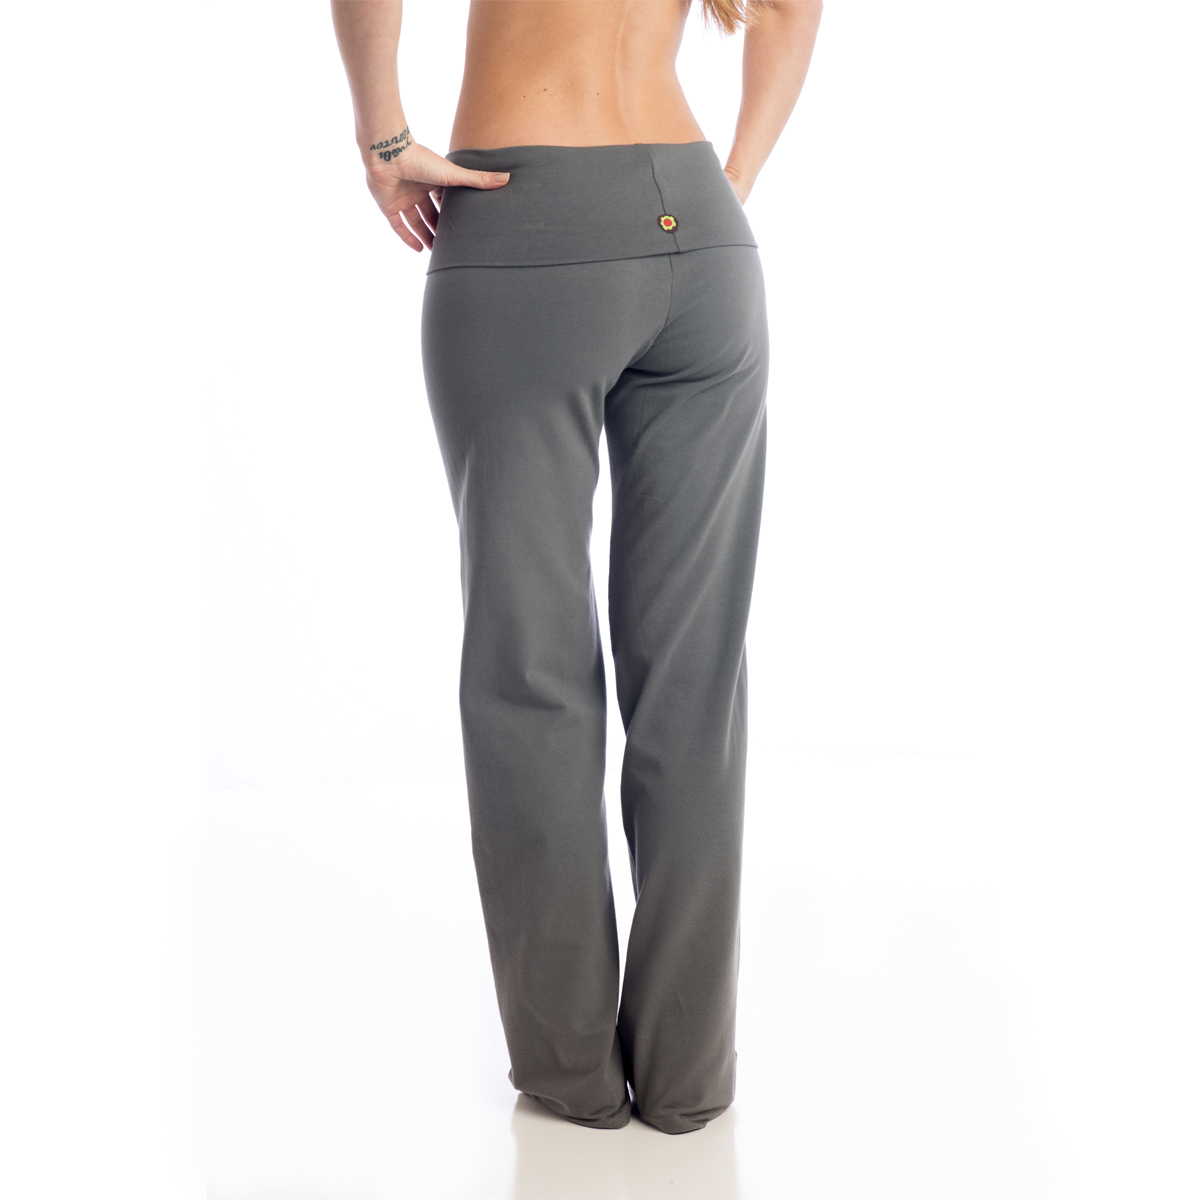 Women's Organic Cotton Wide-Leg Pant Yoga Wisdom Long